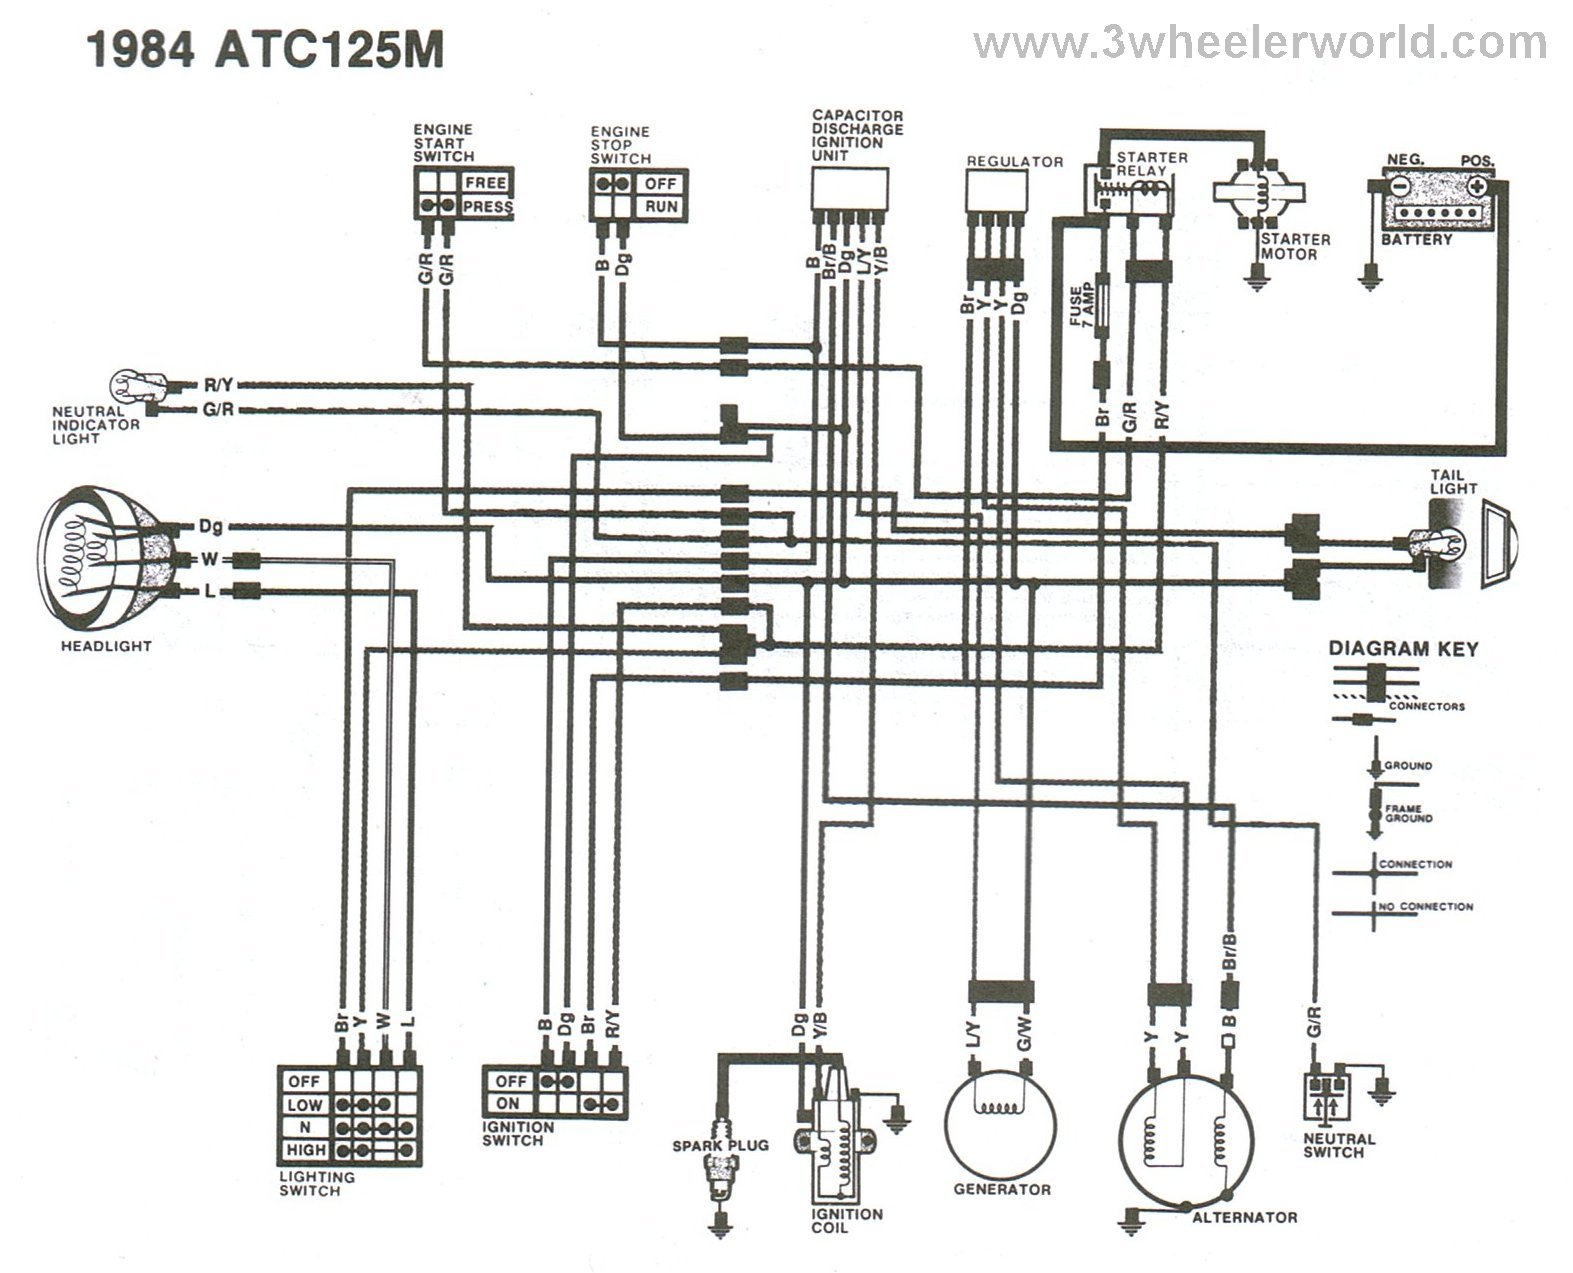 1984 Honda Wiring Diagram - Auto Electrical Wiring Diagram •